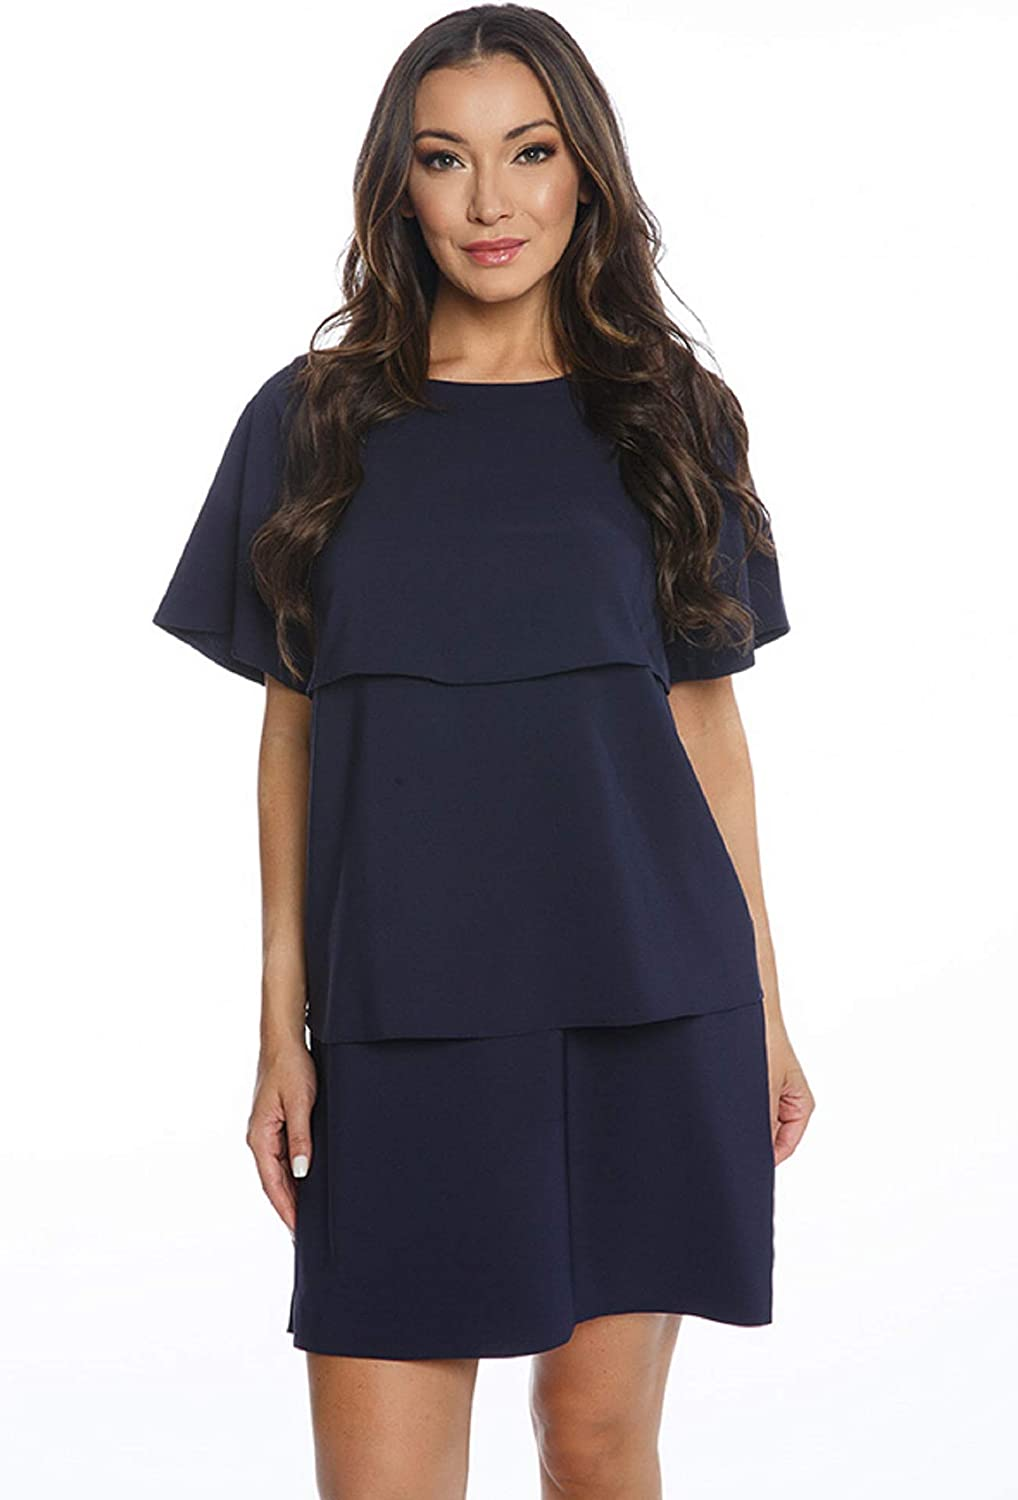 Isle Apparel by Melis Kozan Layered Shift Dress